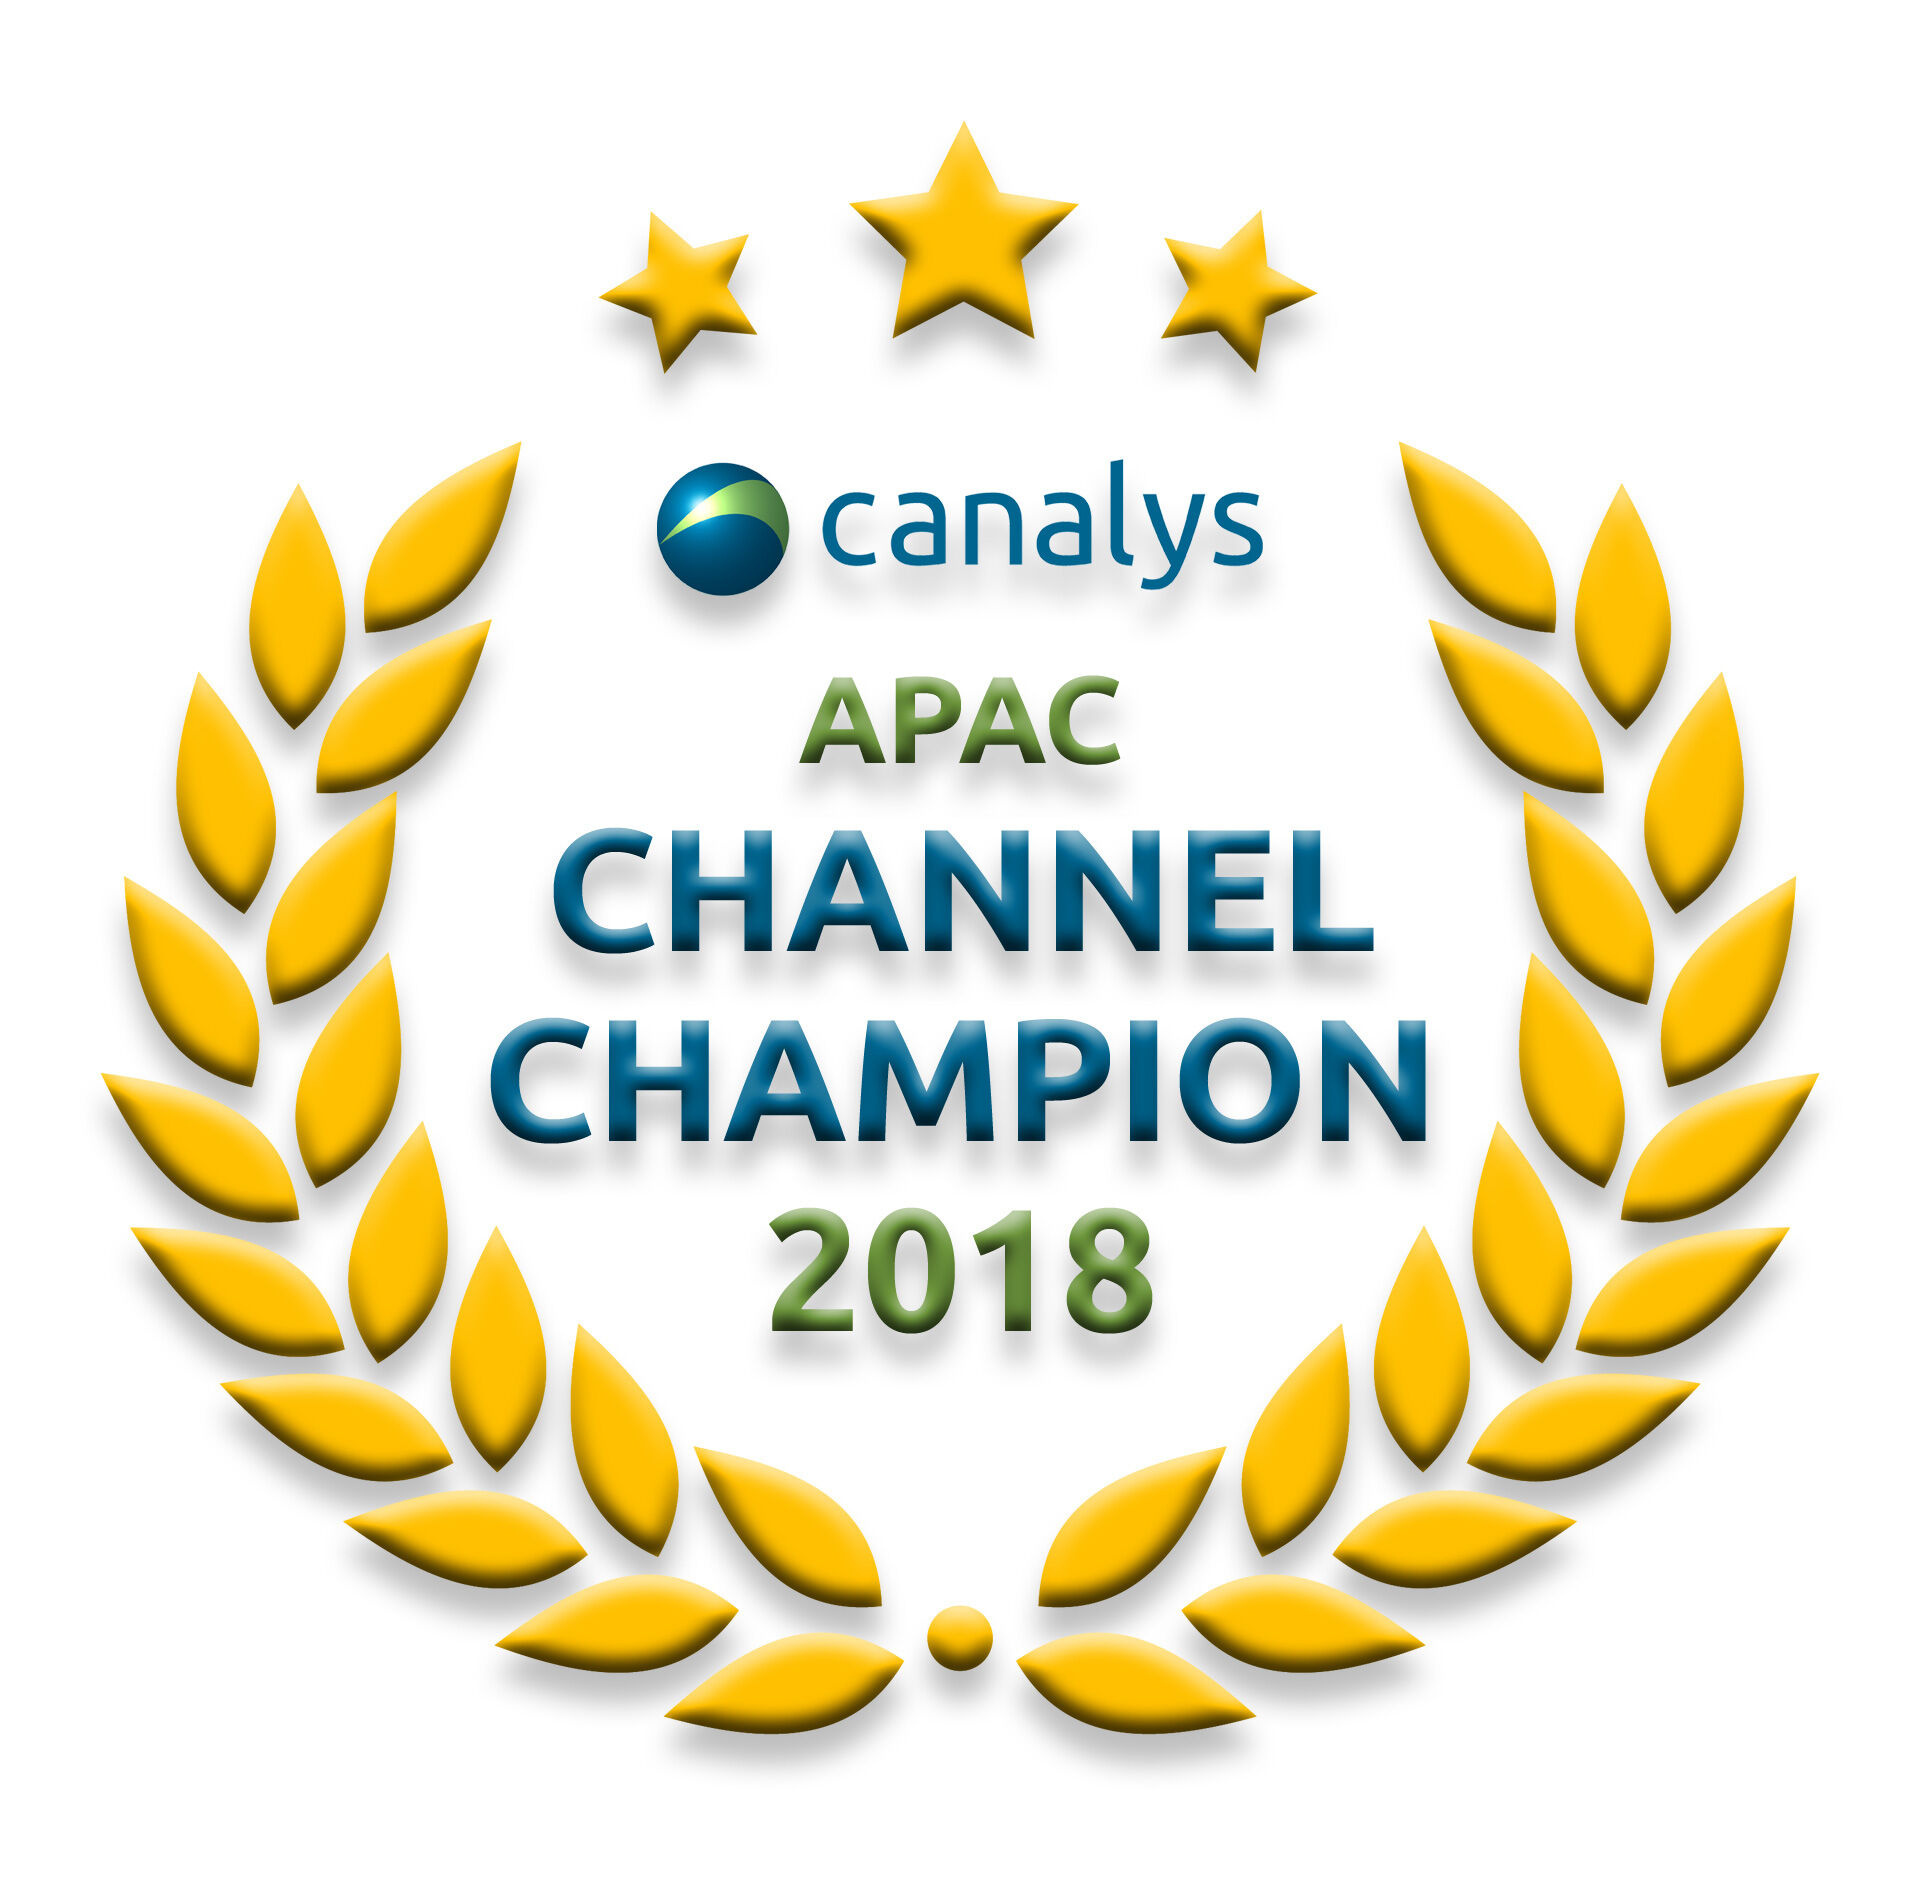 Veeam® came in at the top again in the Champions category in the Canalys Leadership Matrix!